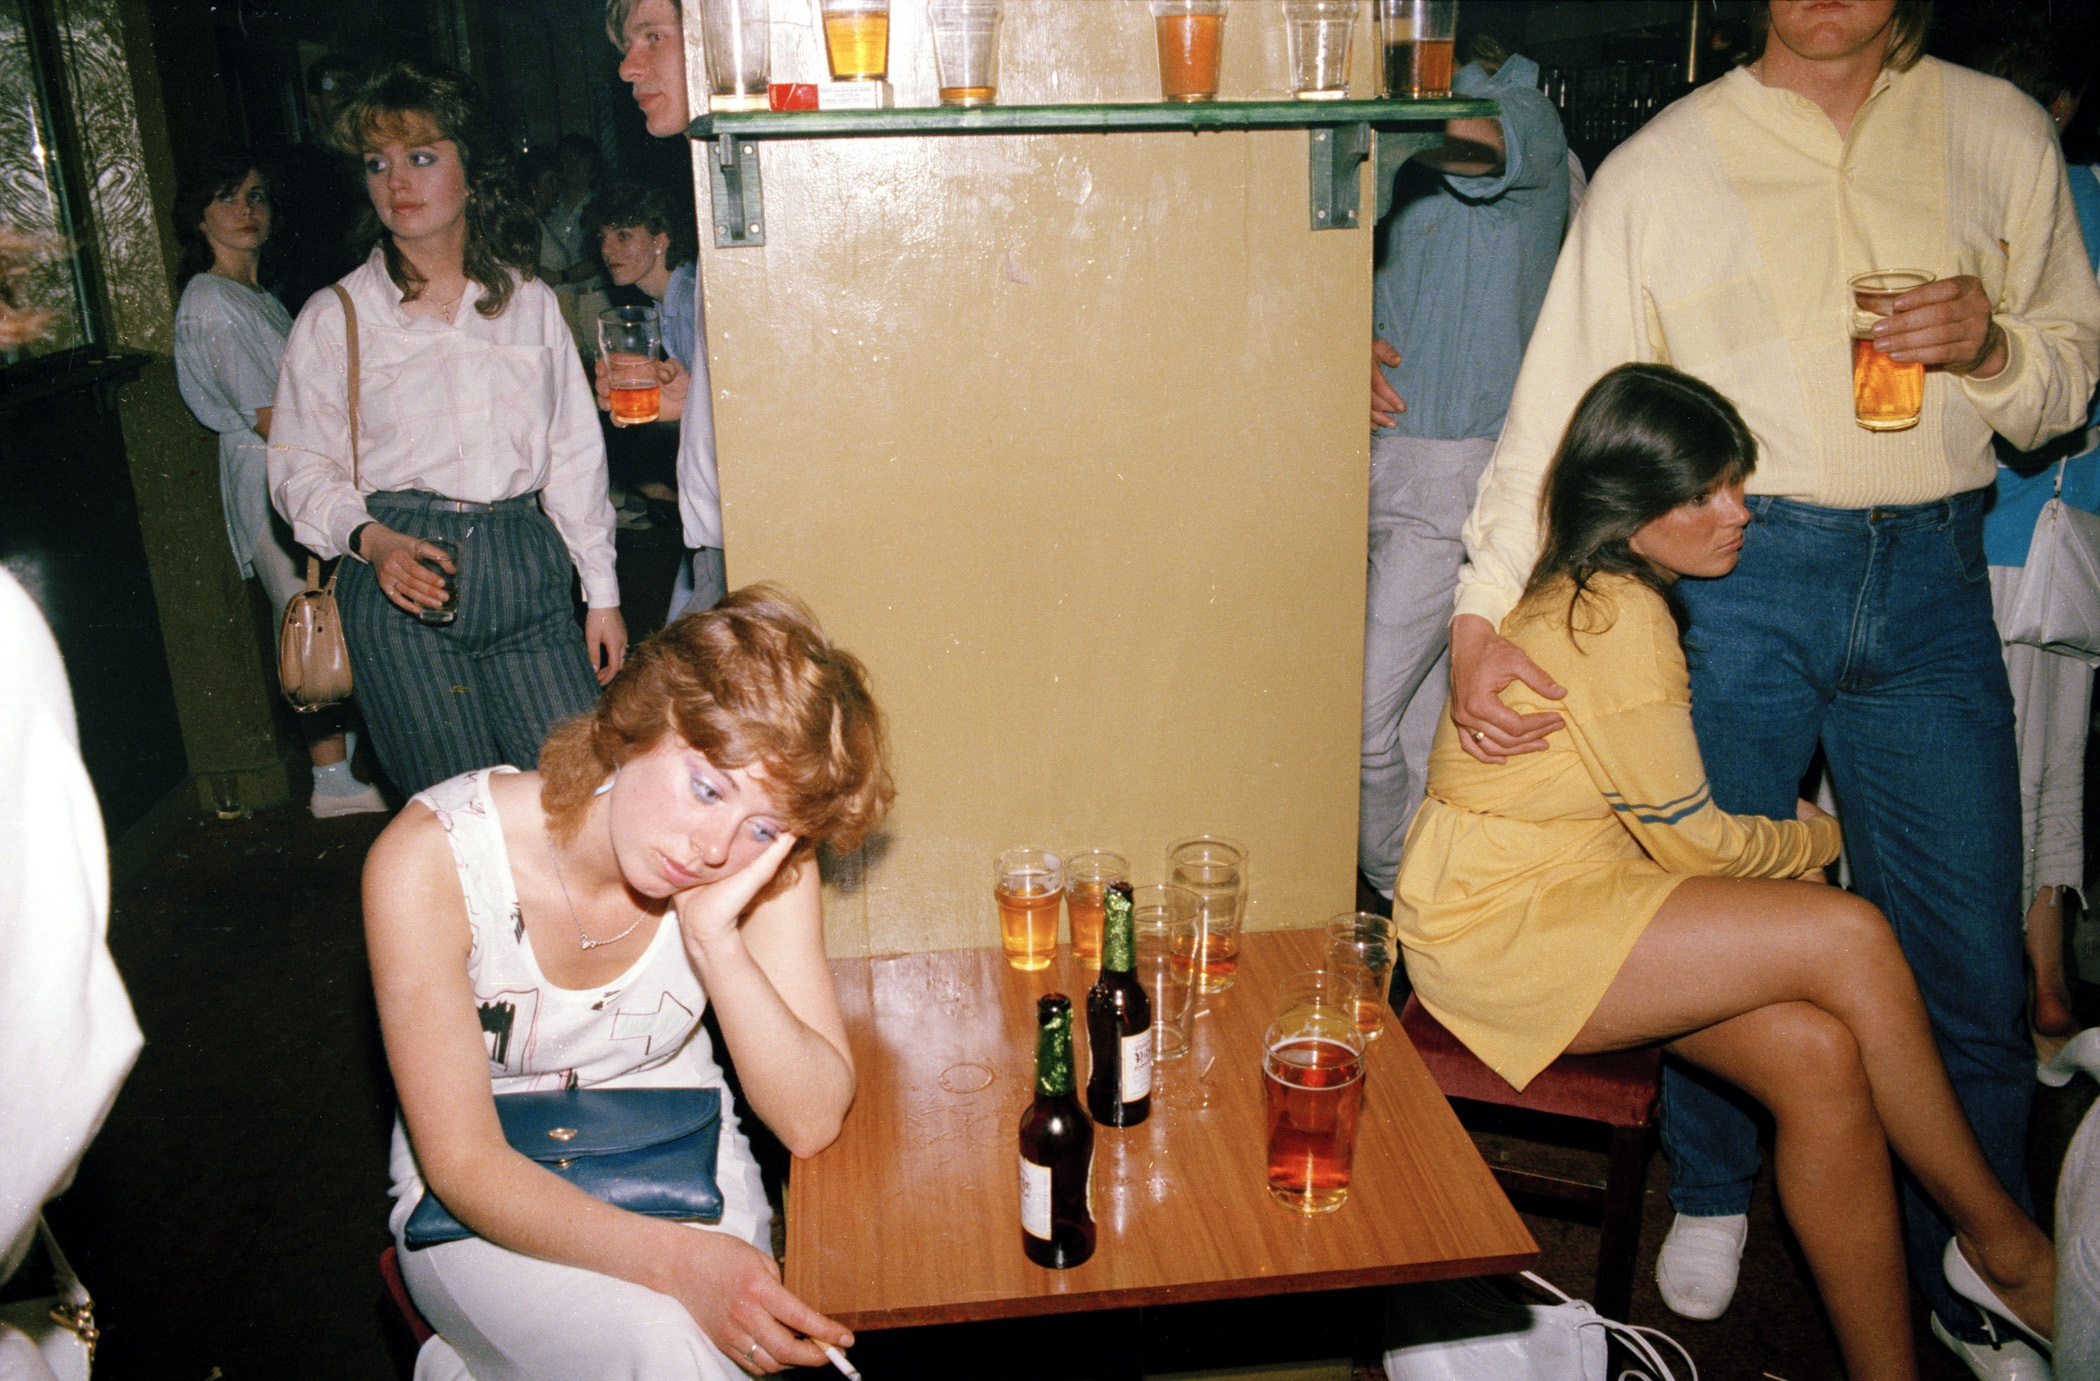 Tired drink picture, 1986 from the series 'Looking for love' © Tom Wood